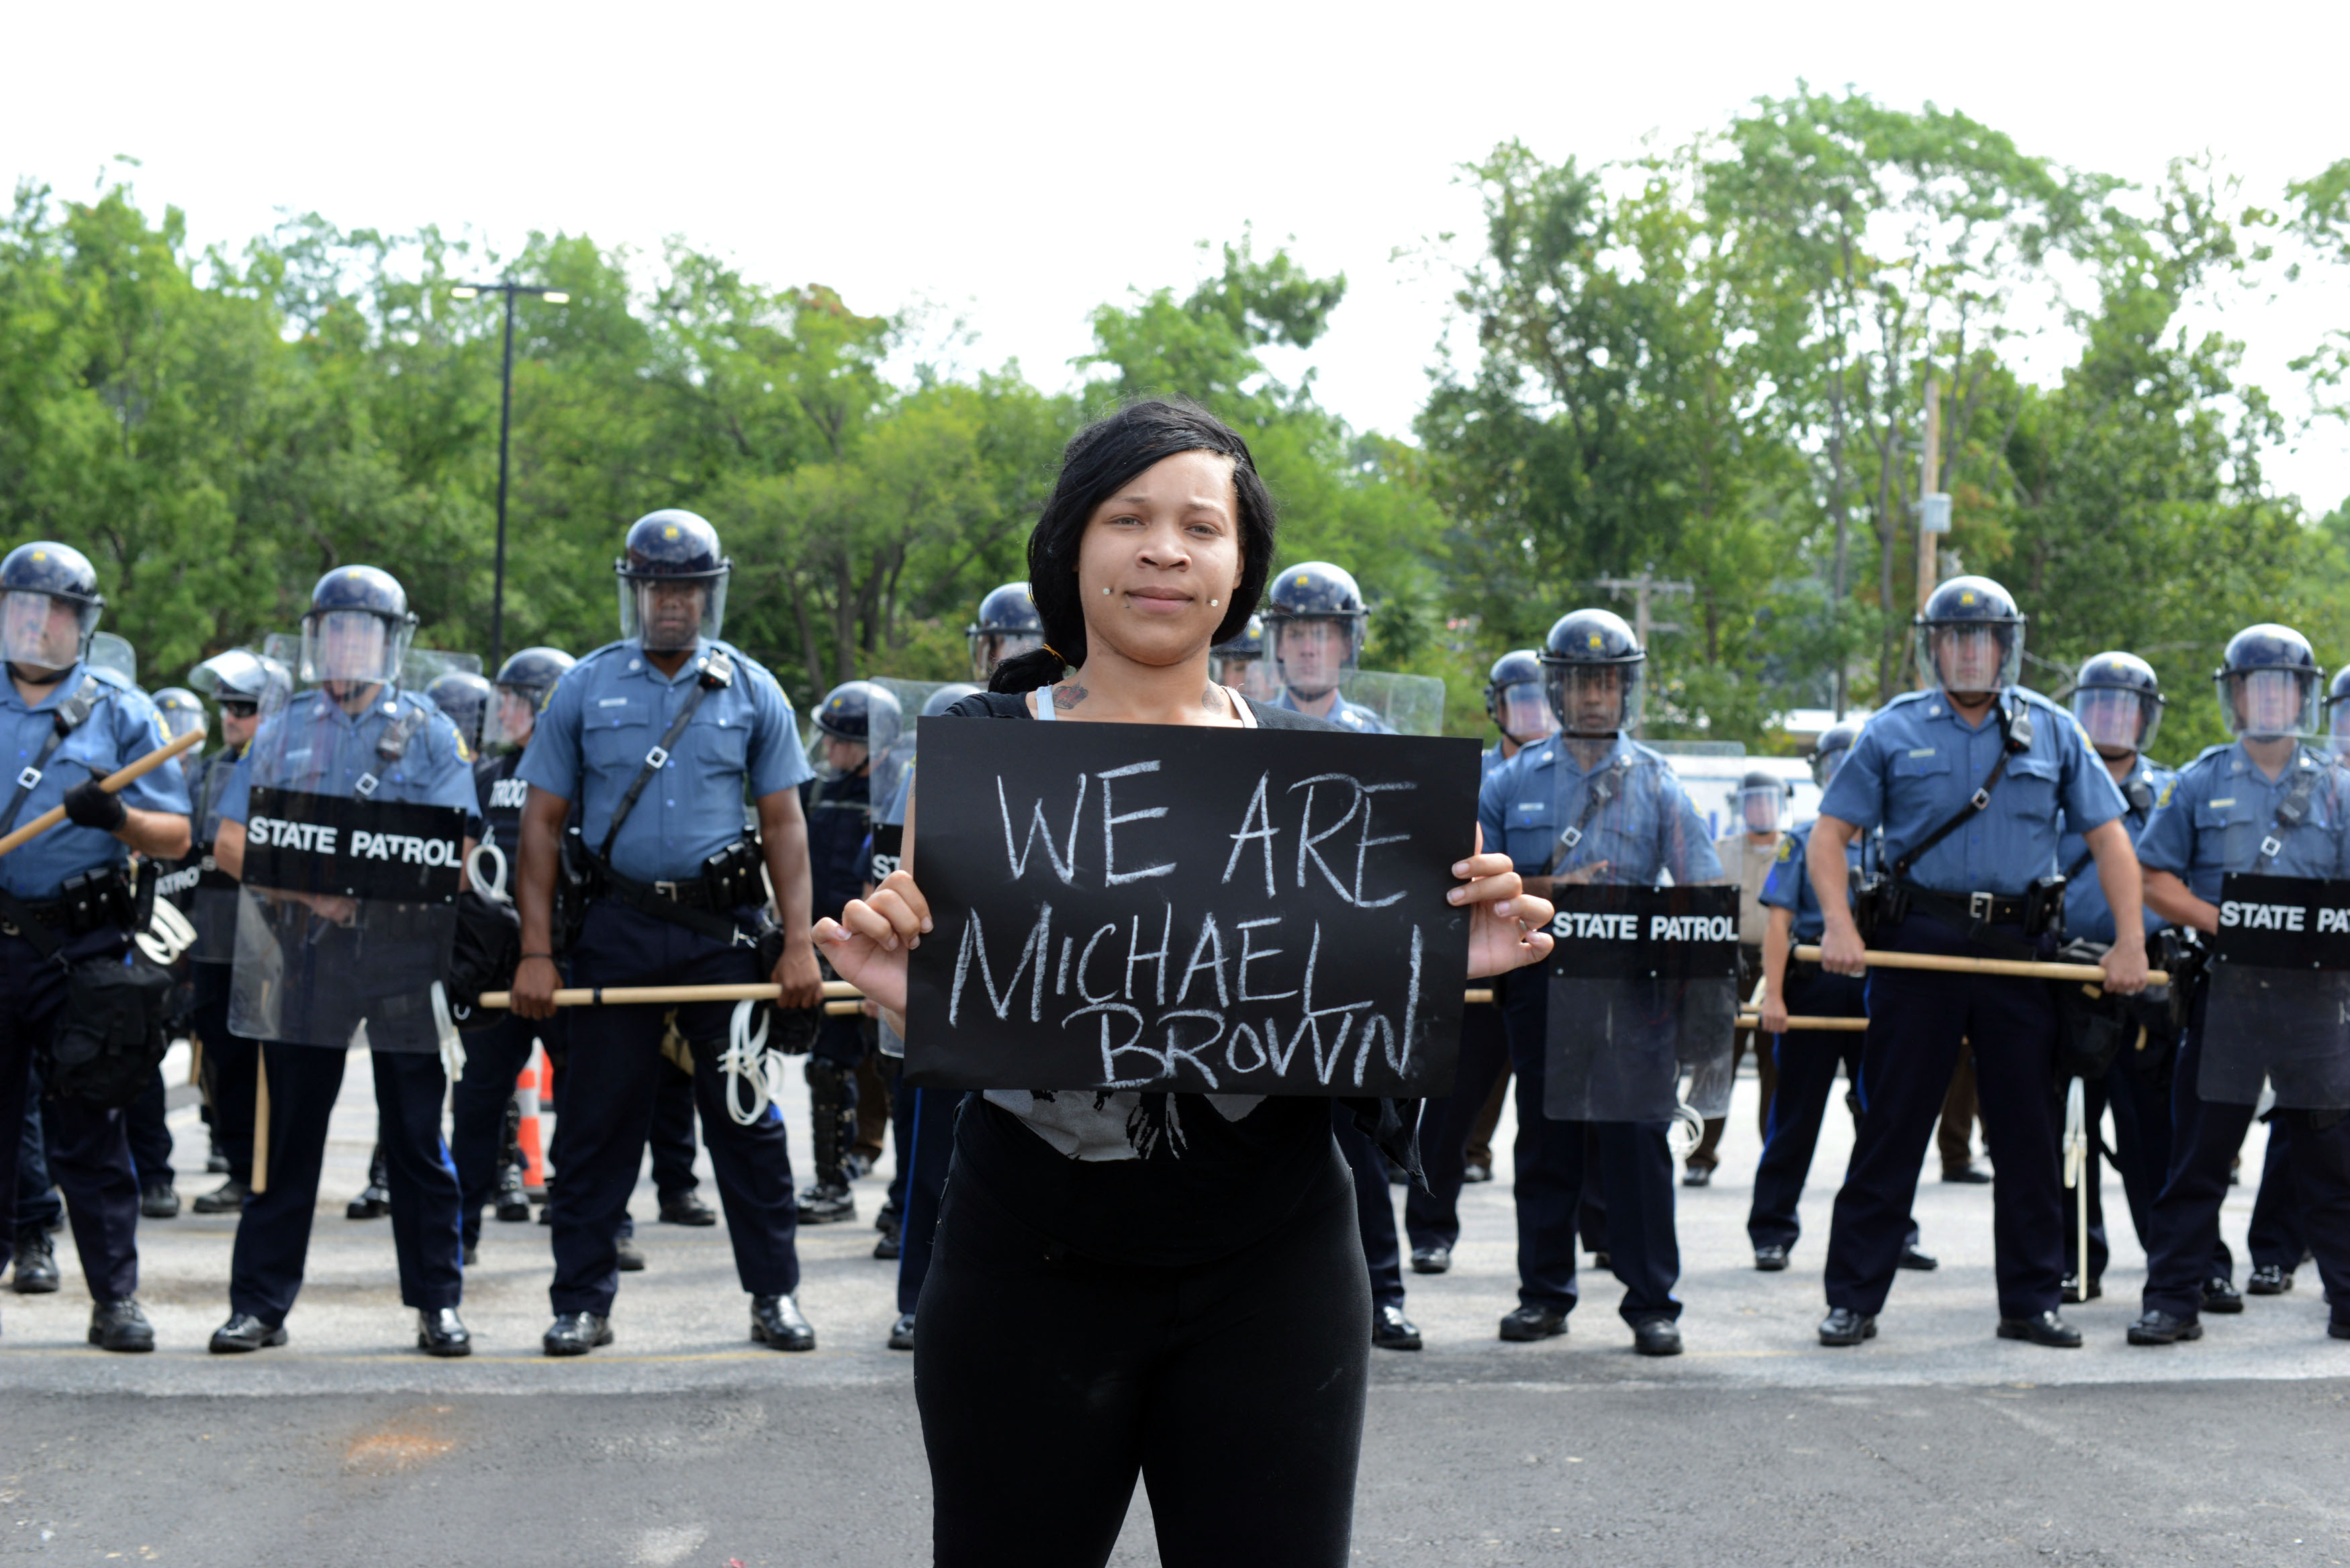 case of ferguson What happened in the encounter between officer darren wilson and michael brown unrest in the st louis suburb of ferguson if that was the case.